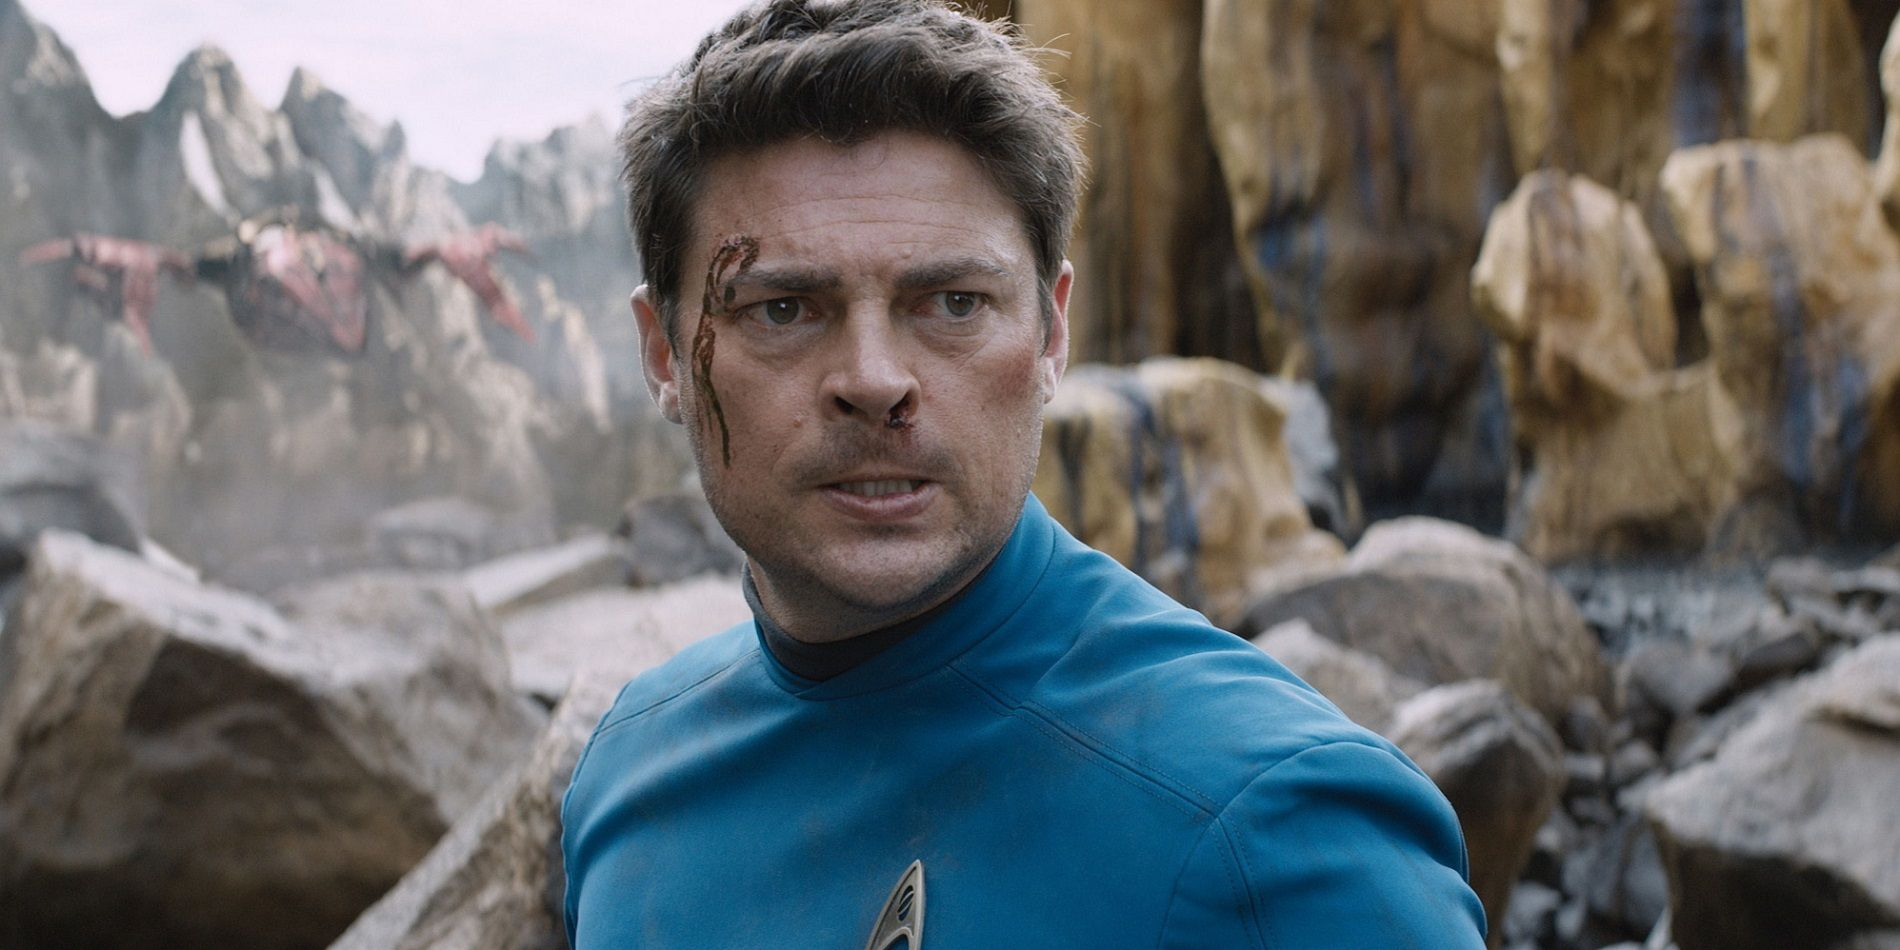 Karl Urban as Bones in Star Trek Beyond